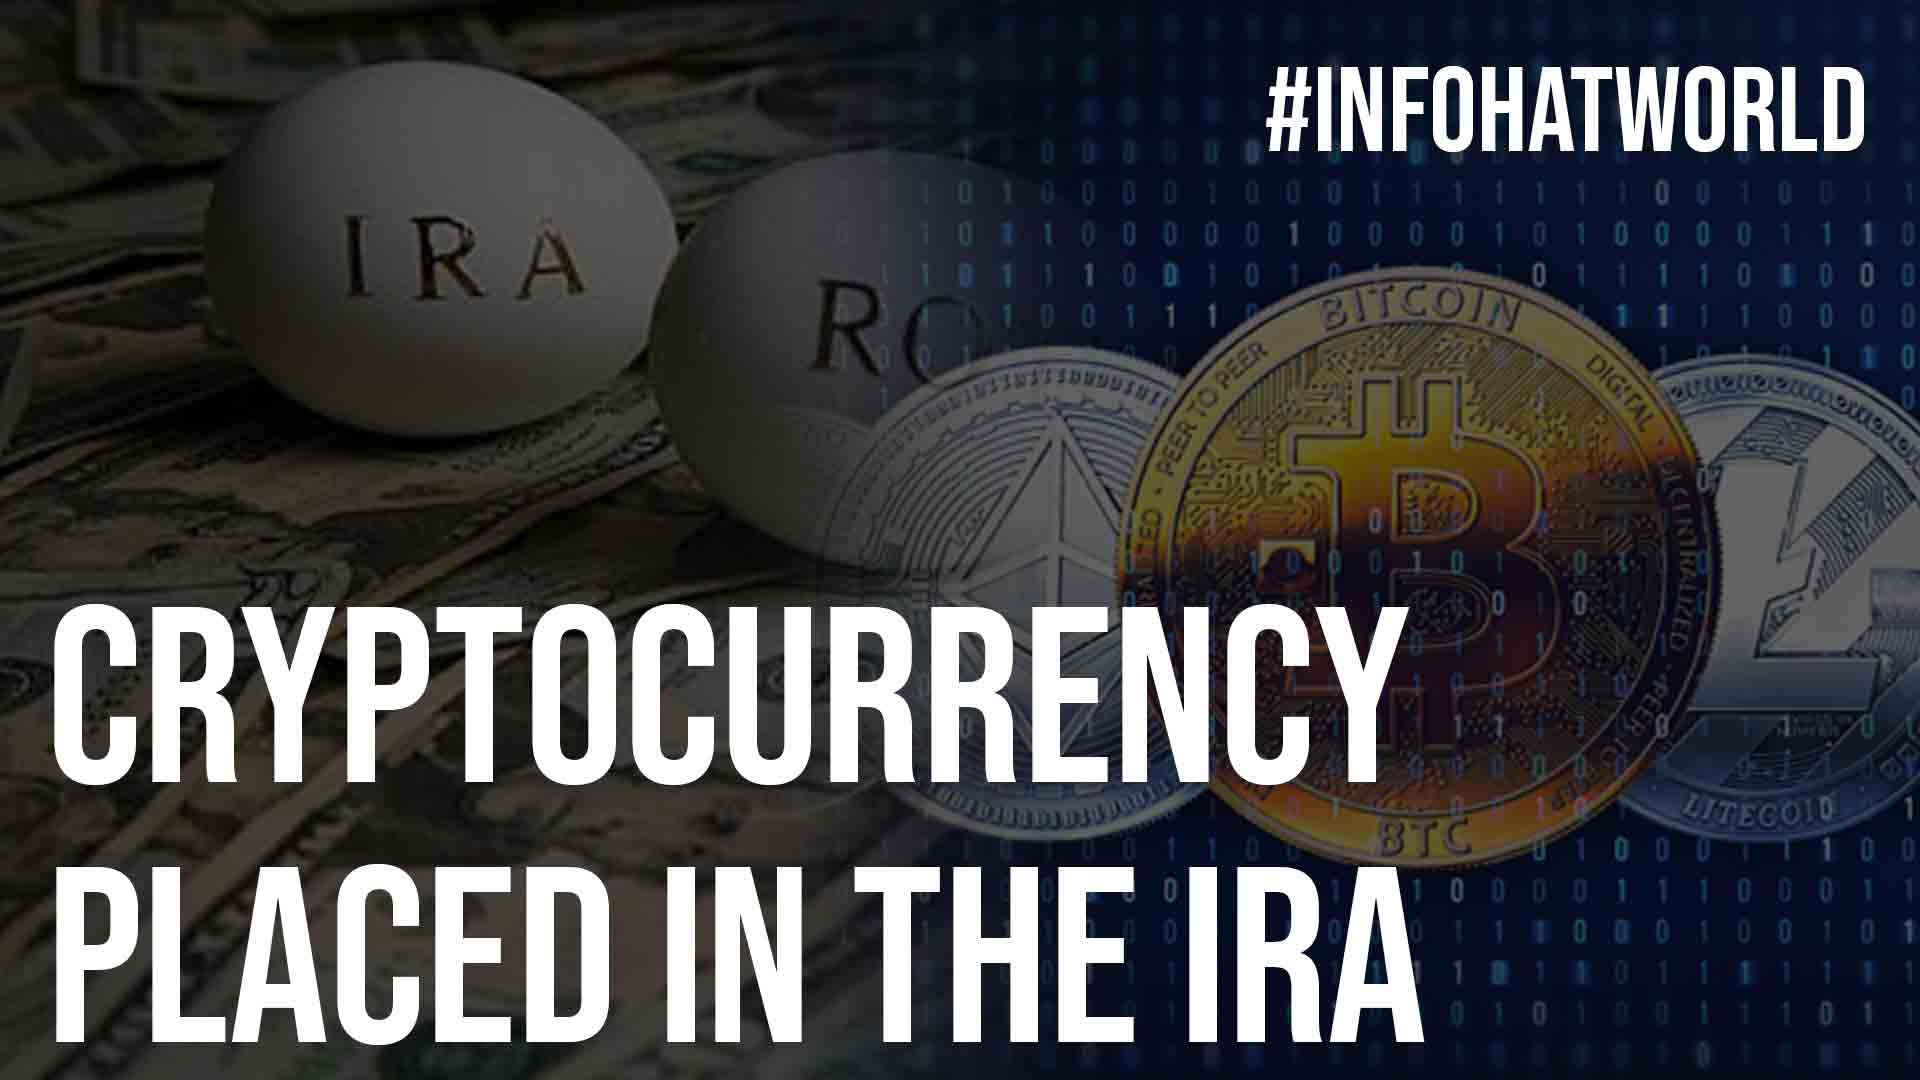 Cryptocurrency Placed in the IRA